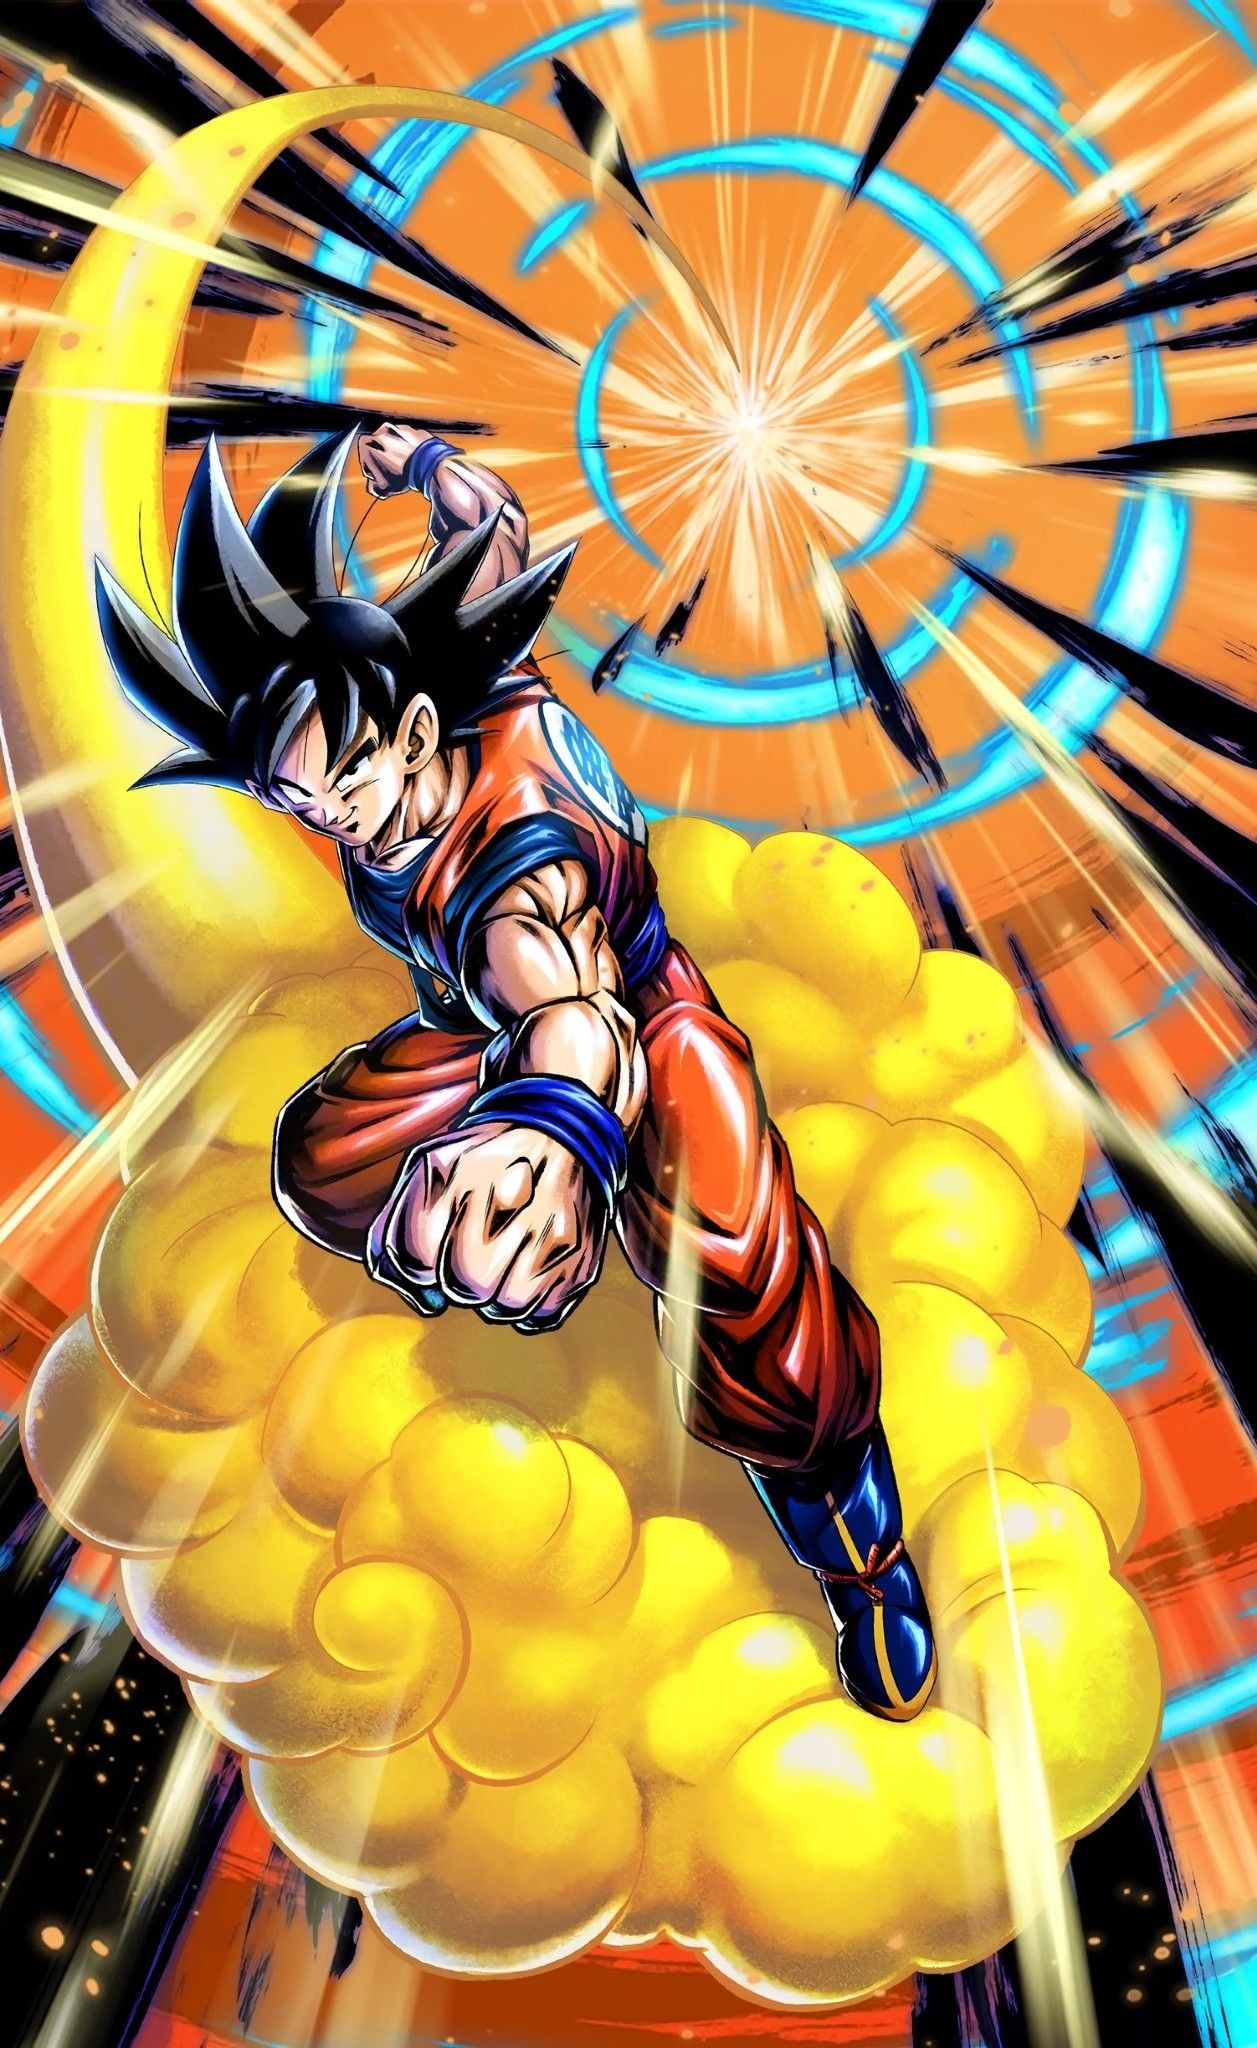 F2p Goku Dbz Kakarot Dragon Ball Legends Anime Dragon Ball Super Dragon Ball Z Dragon Ball Goku